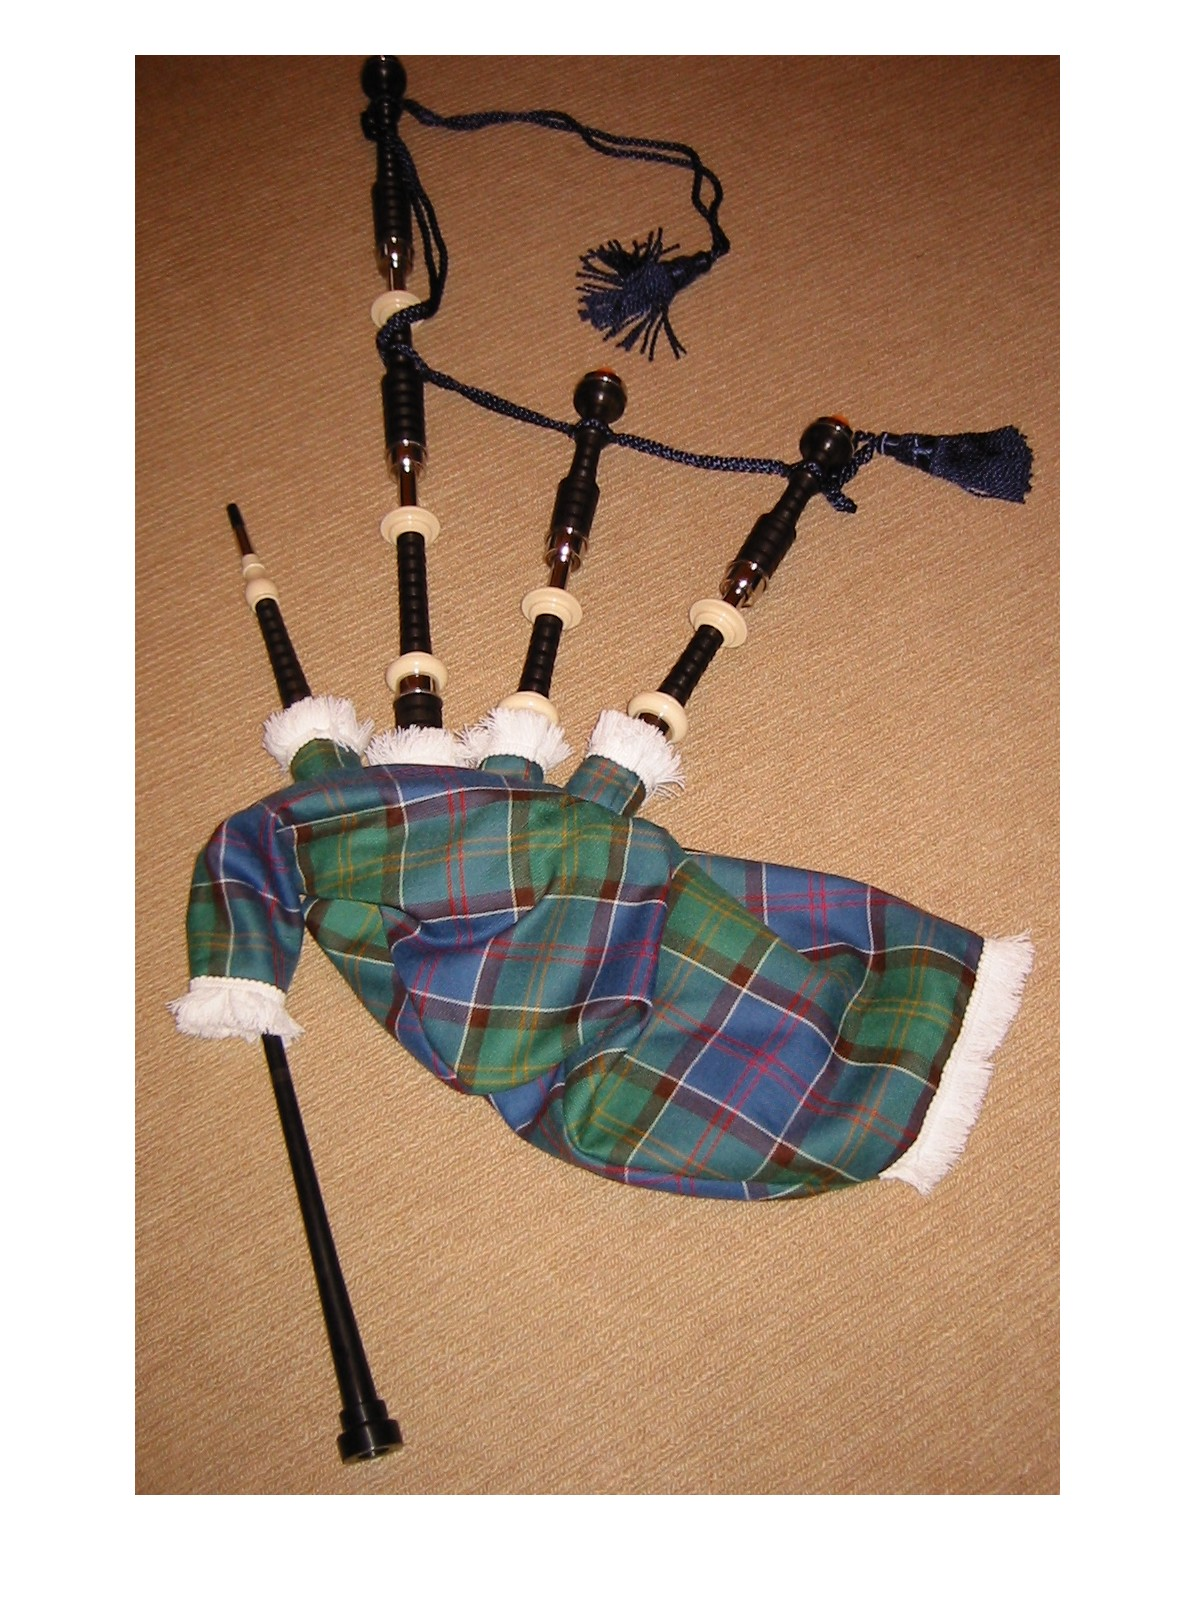 http://upload.wikimedia.org/wikipedia/commons/e/e8/Great_Highlands_Bagpipe.jpg